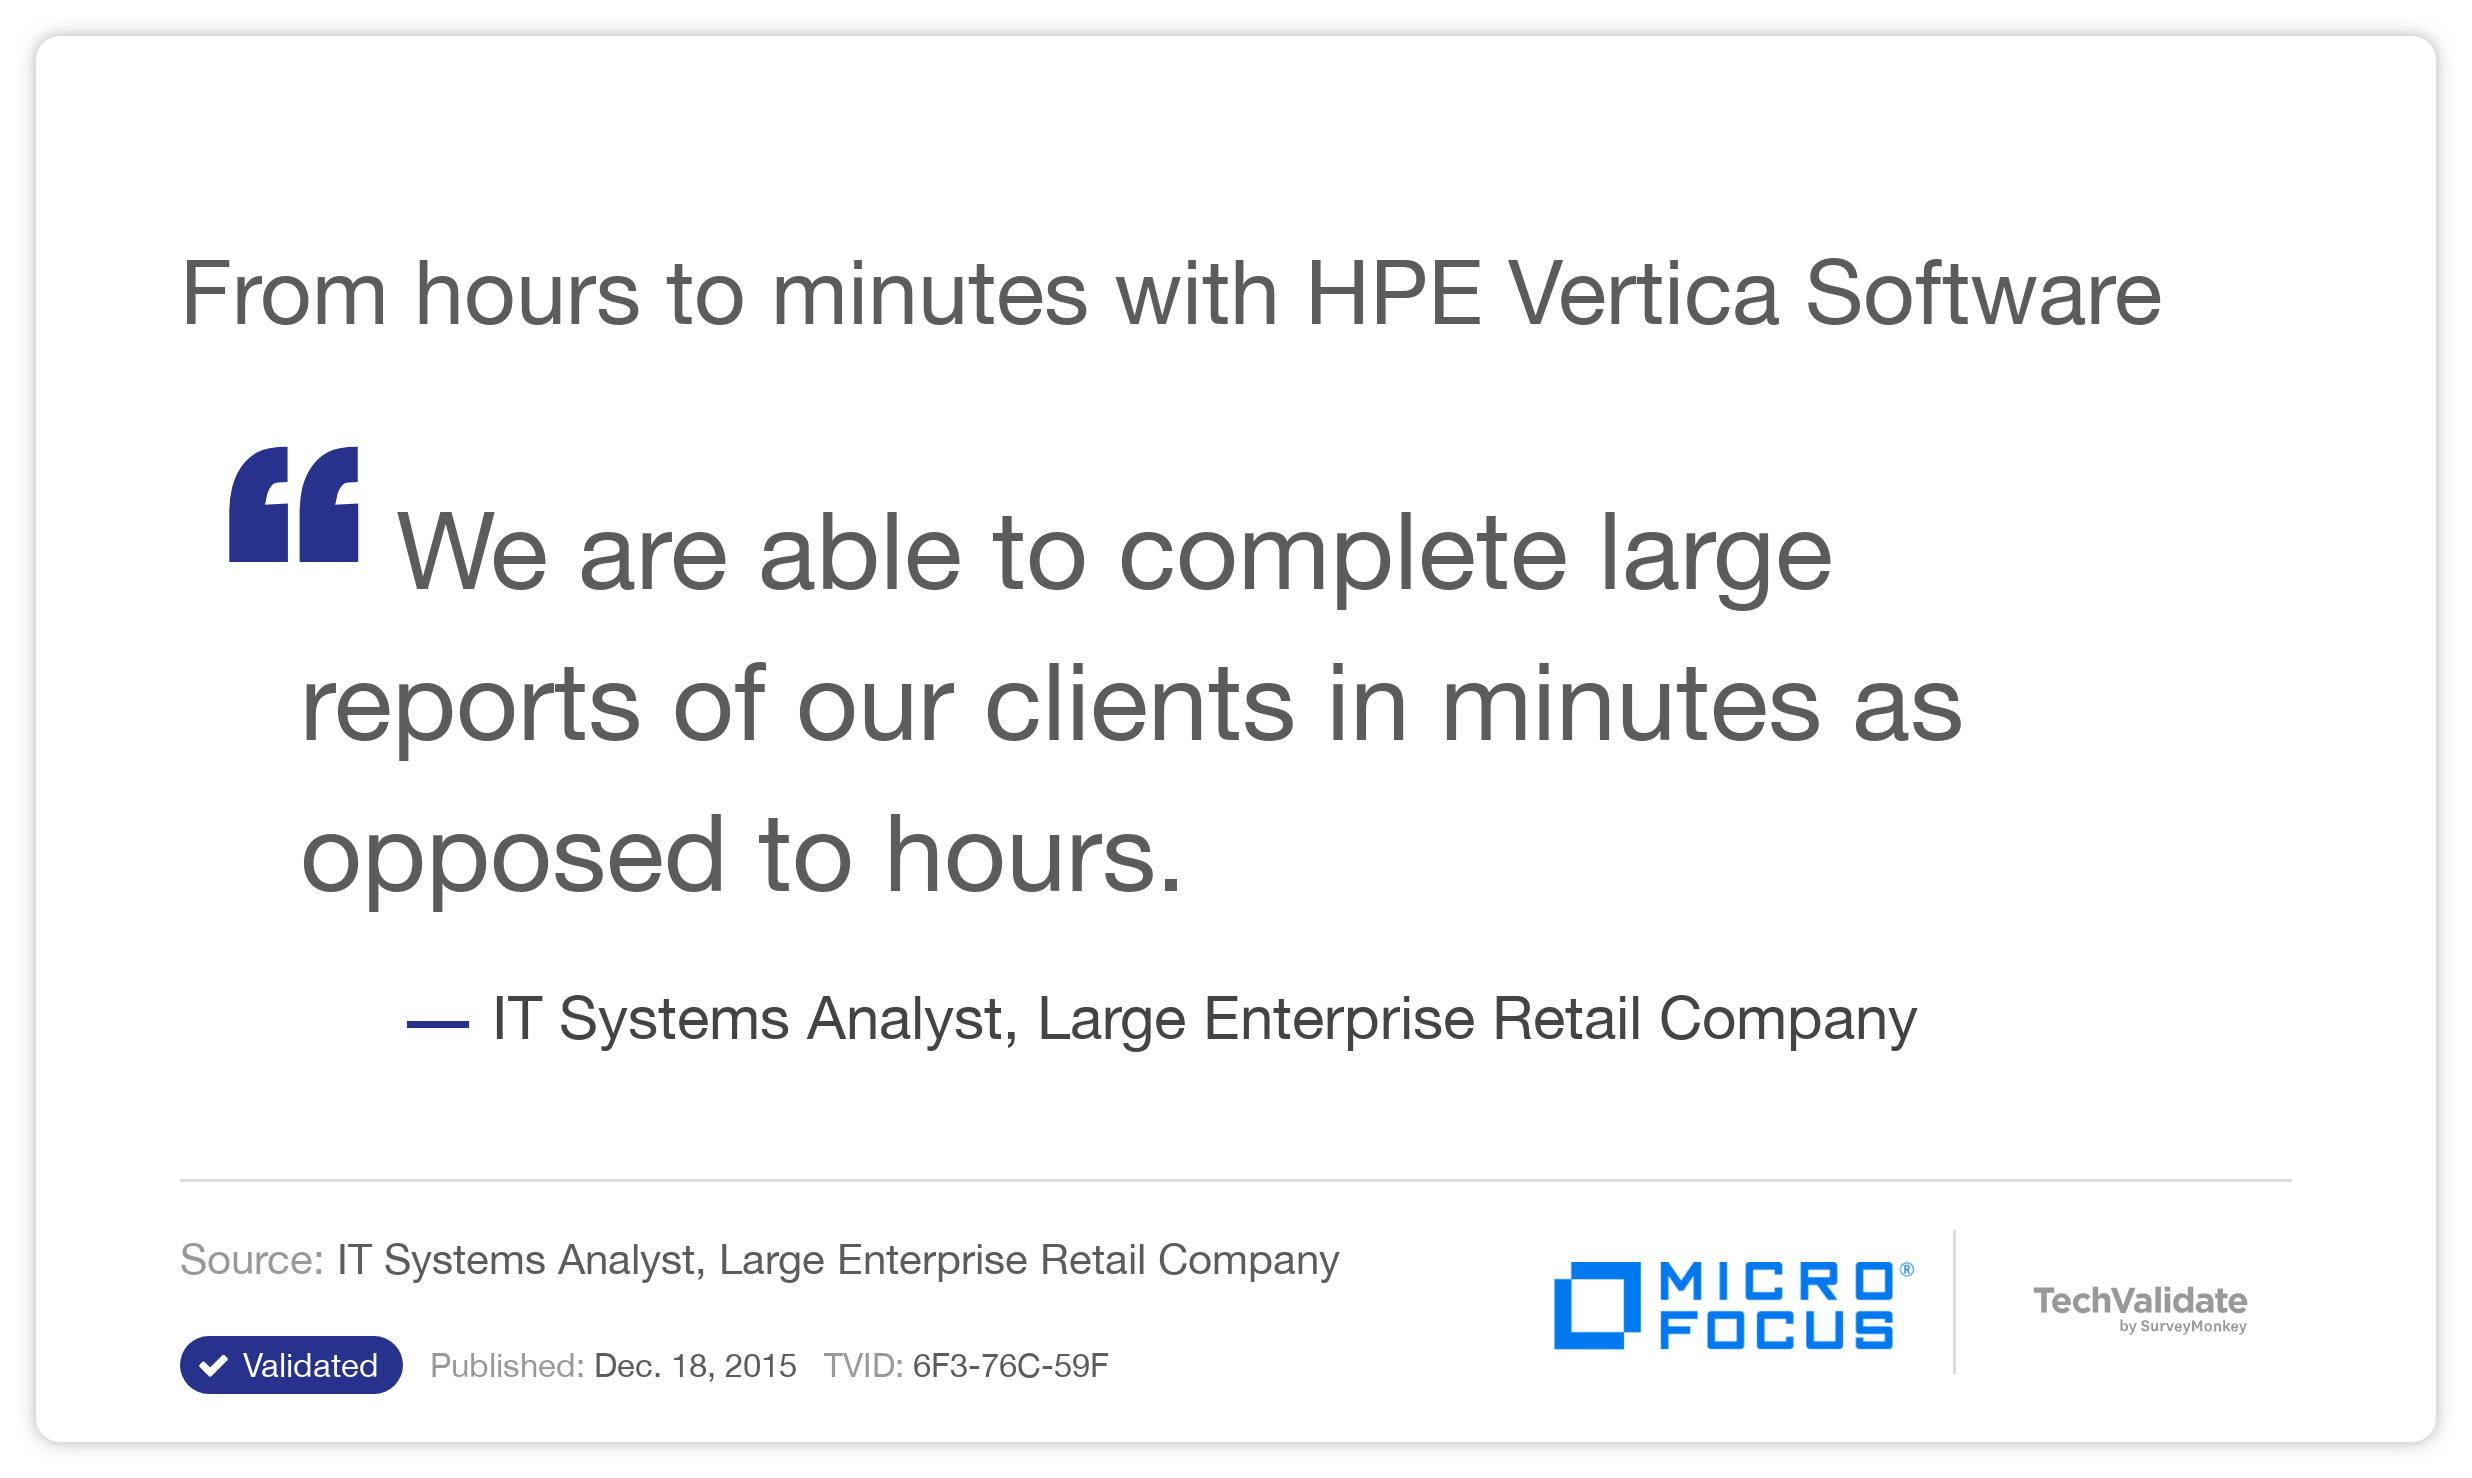 From hours to minutes with HPE Vertica Software